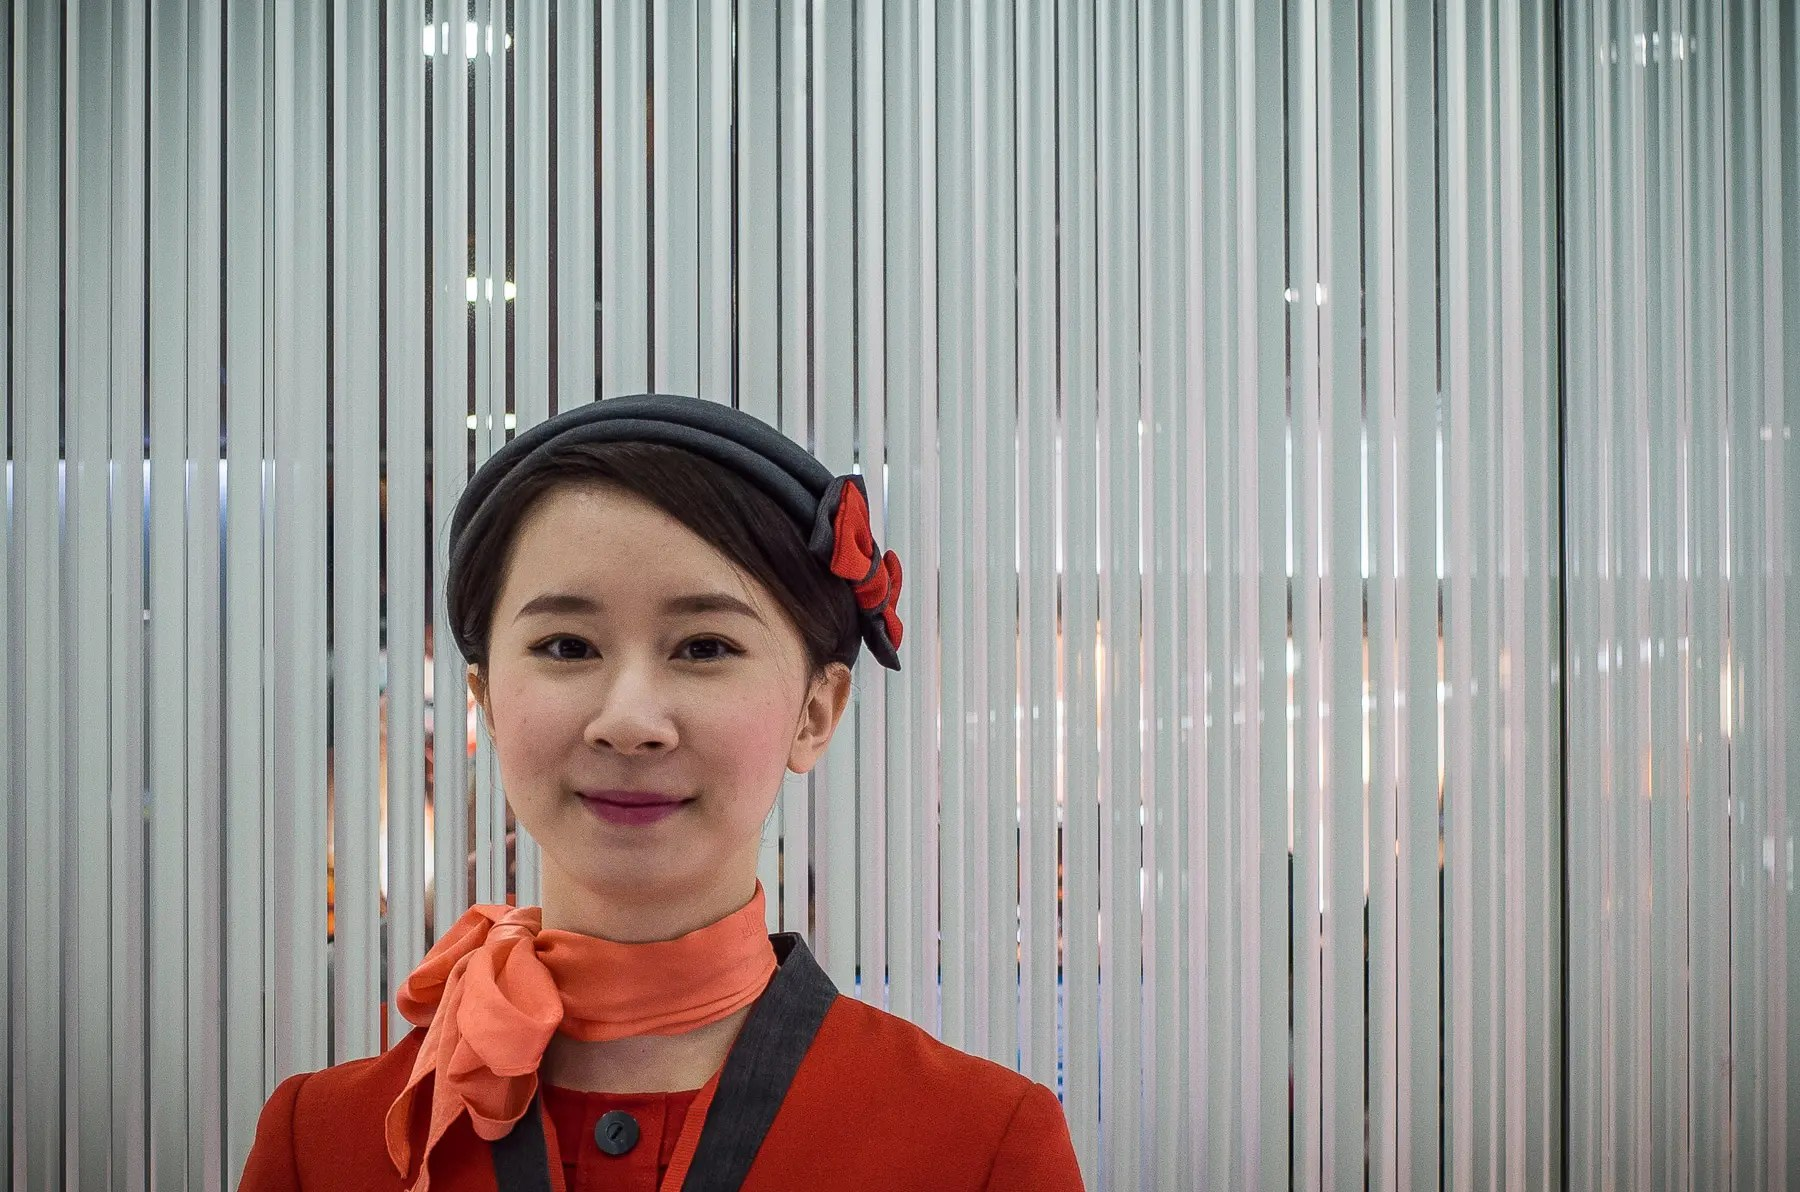 Taipei Airport Information Center girl